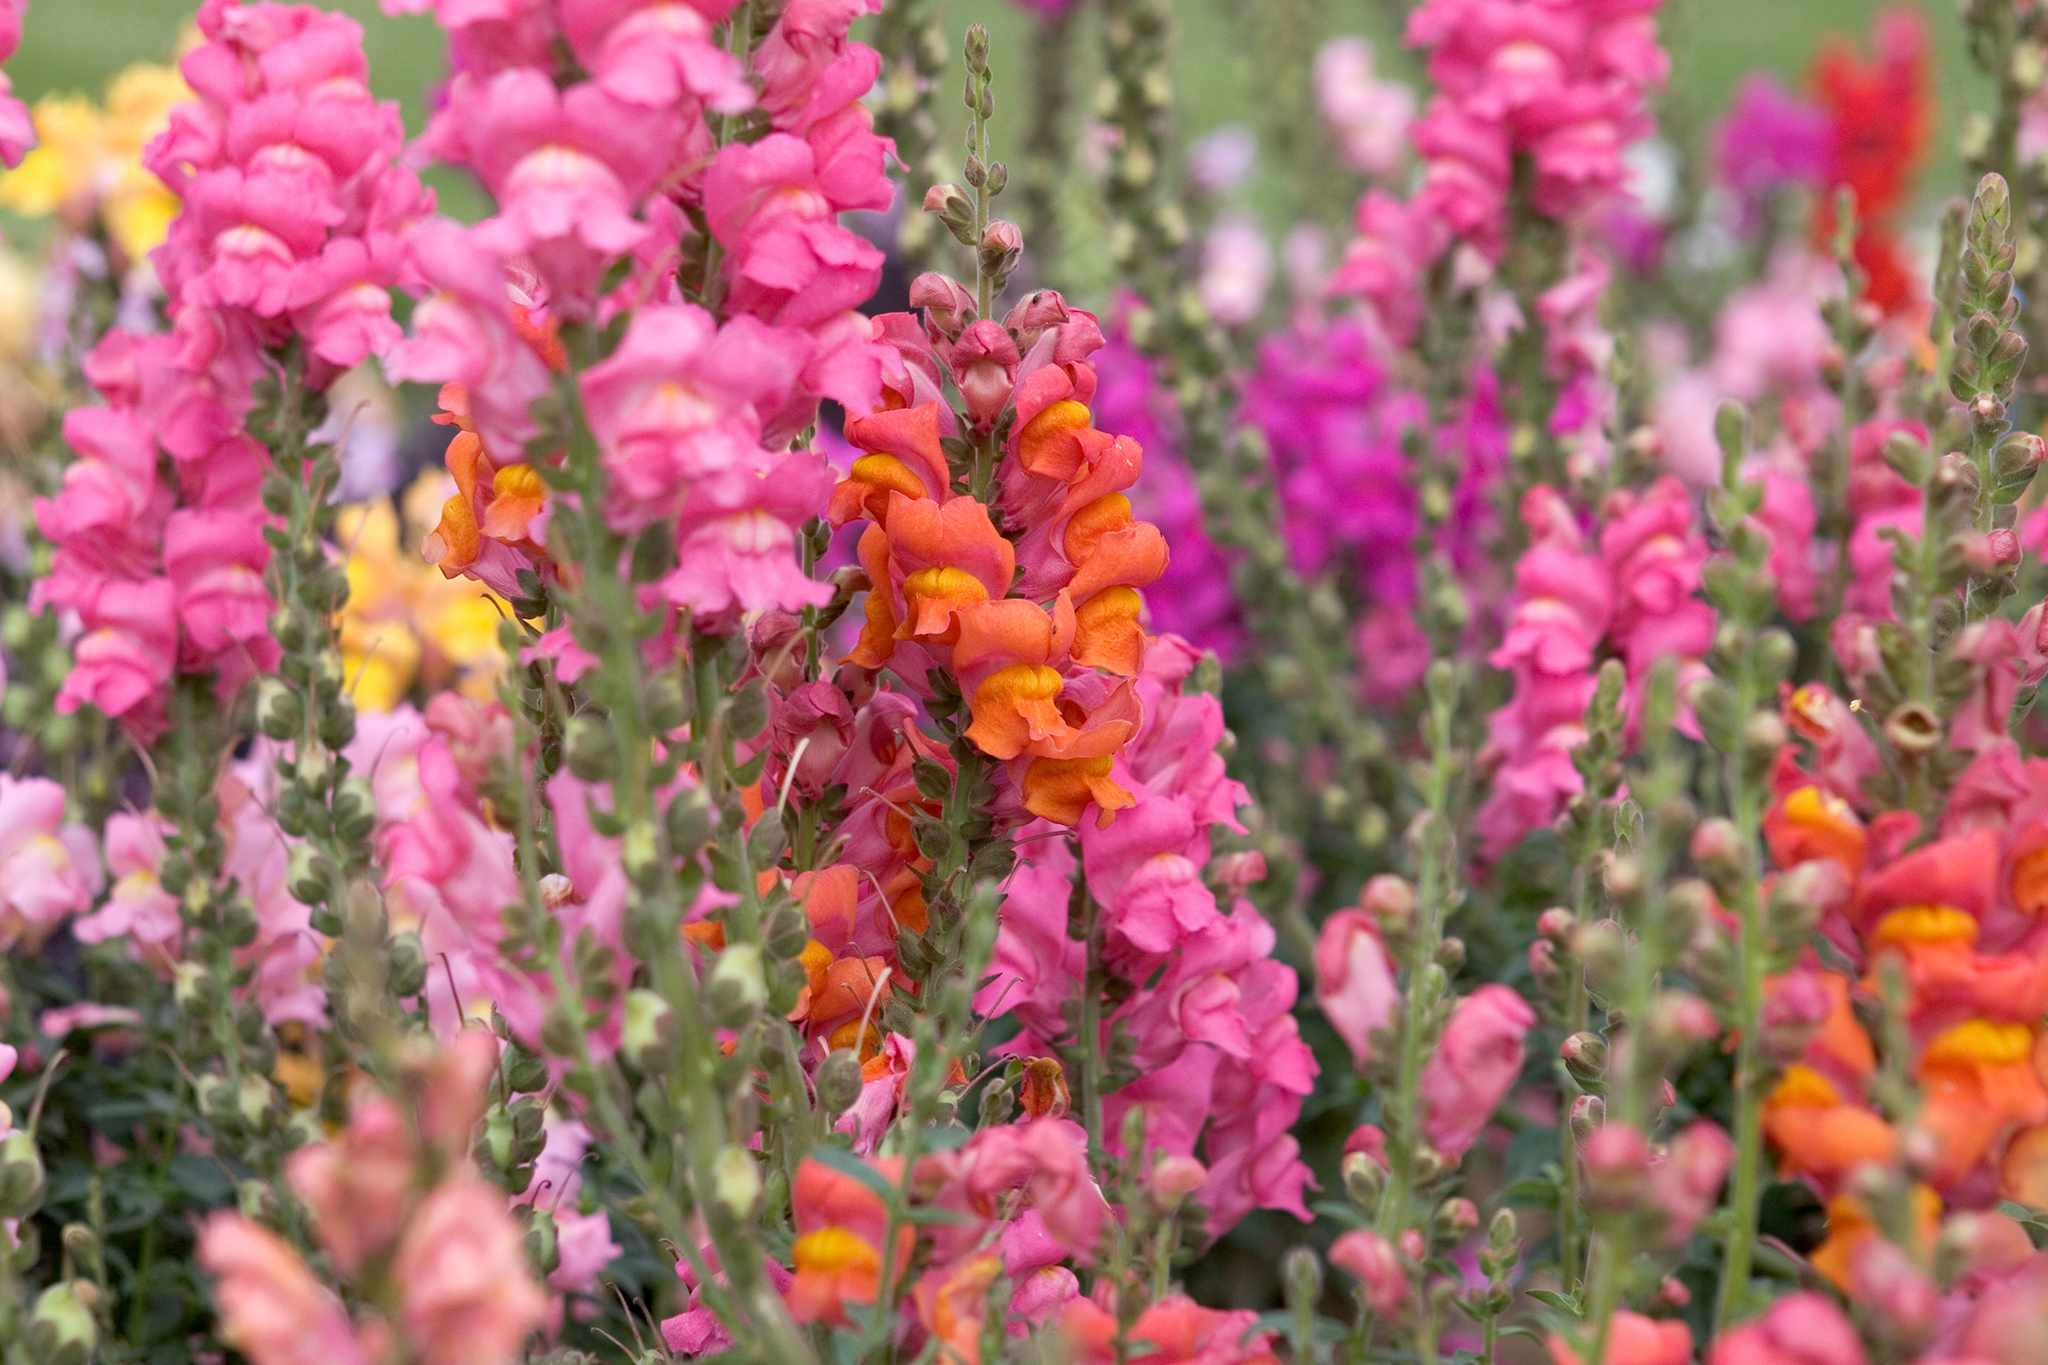 Mixed snapdragon flowers